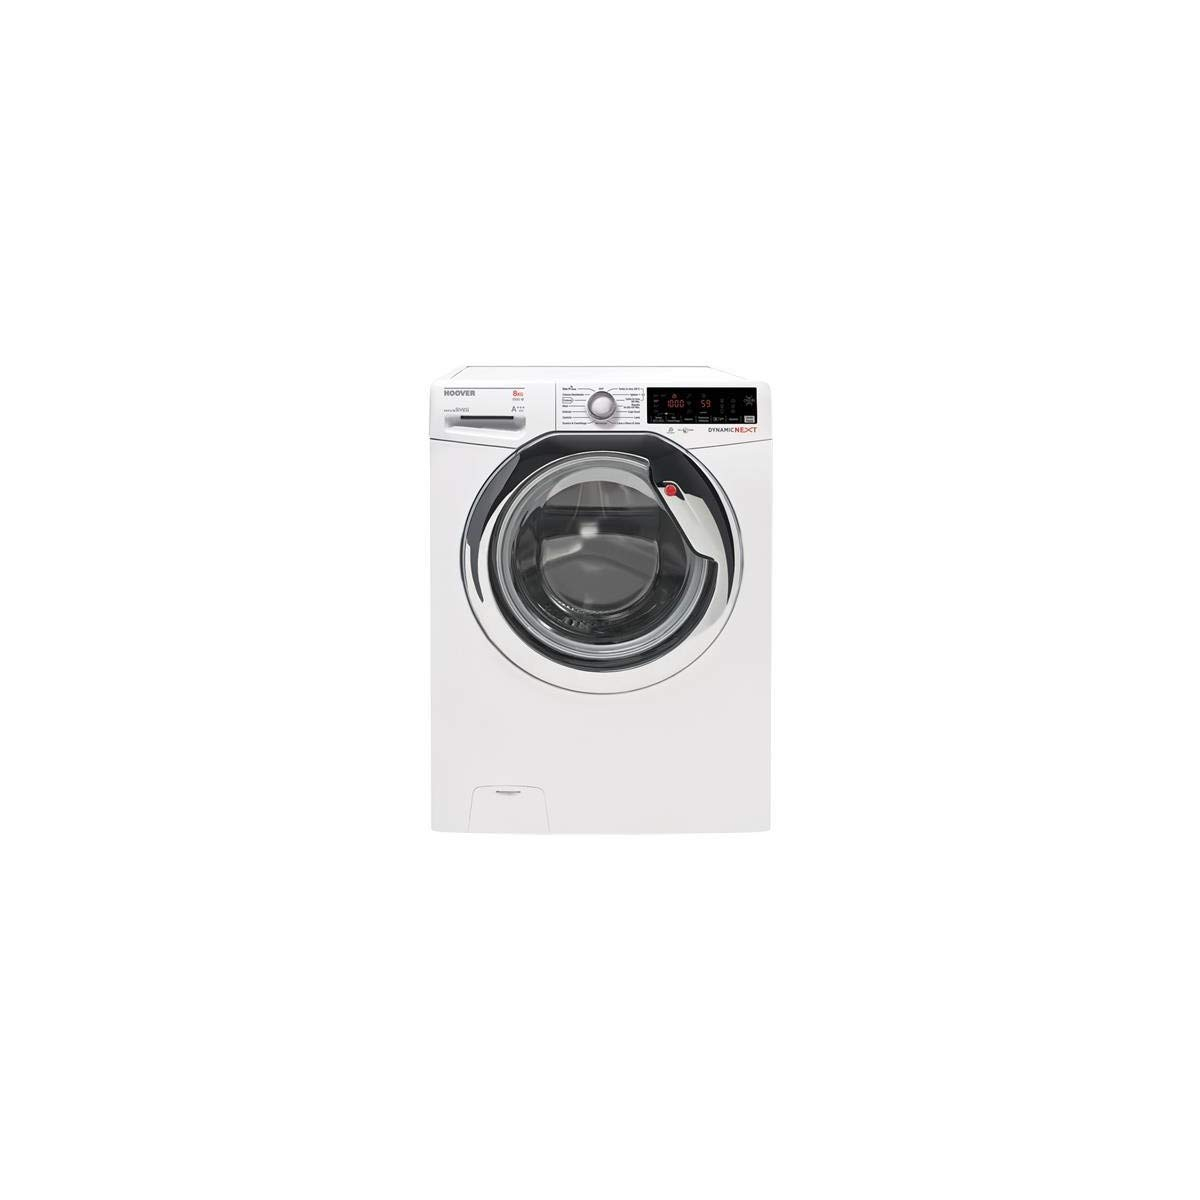 Hoover DWOA 58AHC3-30 Independiente Carga frontal 8kg 1500RPM A+++ ...